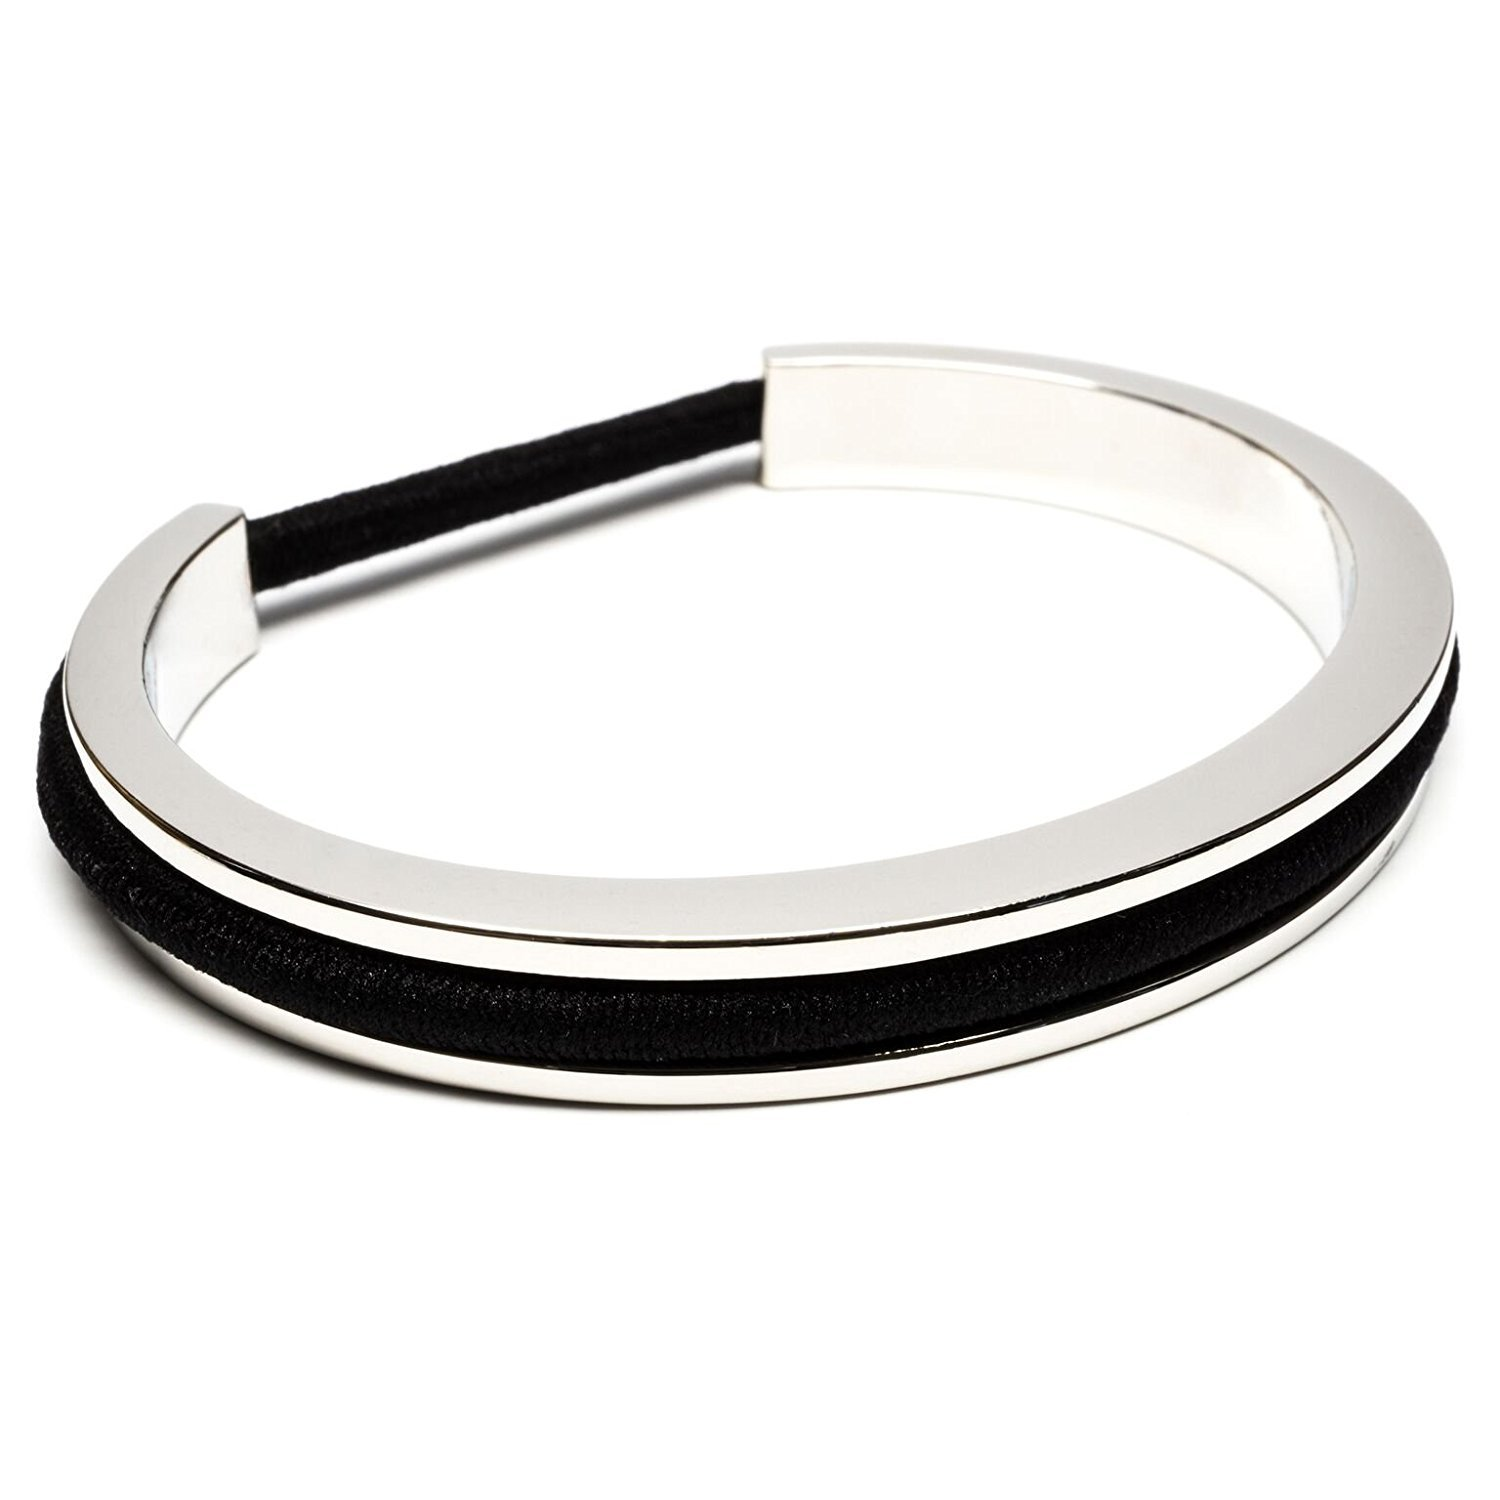 My Hair Tie Bracelet: Ella Design Hair Tie Bracelet - Stainless Steel Hair Tie Holder - Functional Fashion Accessory - Keeps Track of Hair Ties - Comfortable and Stylish